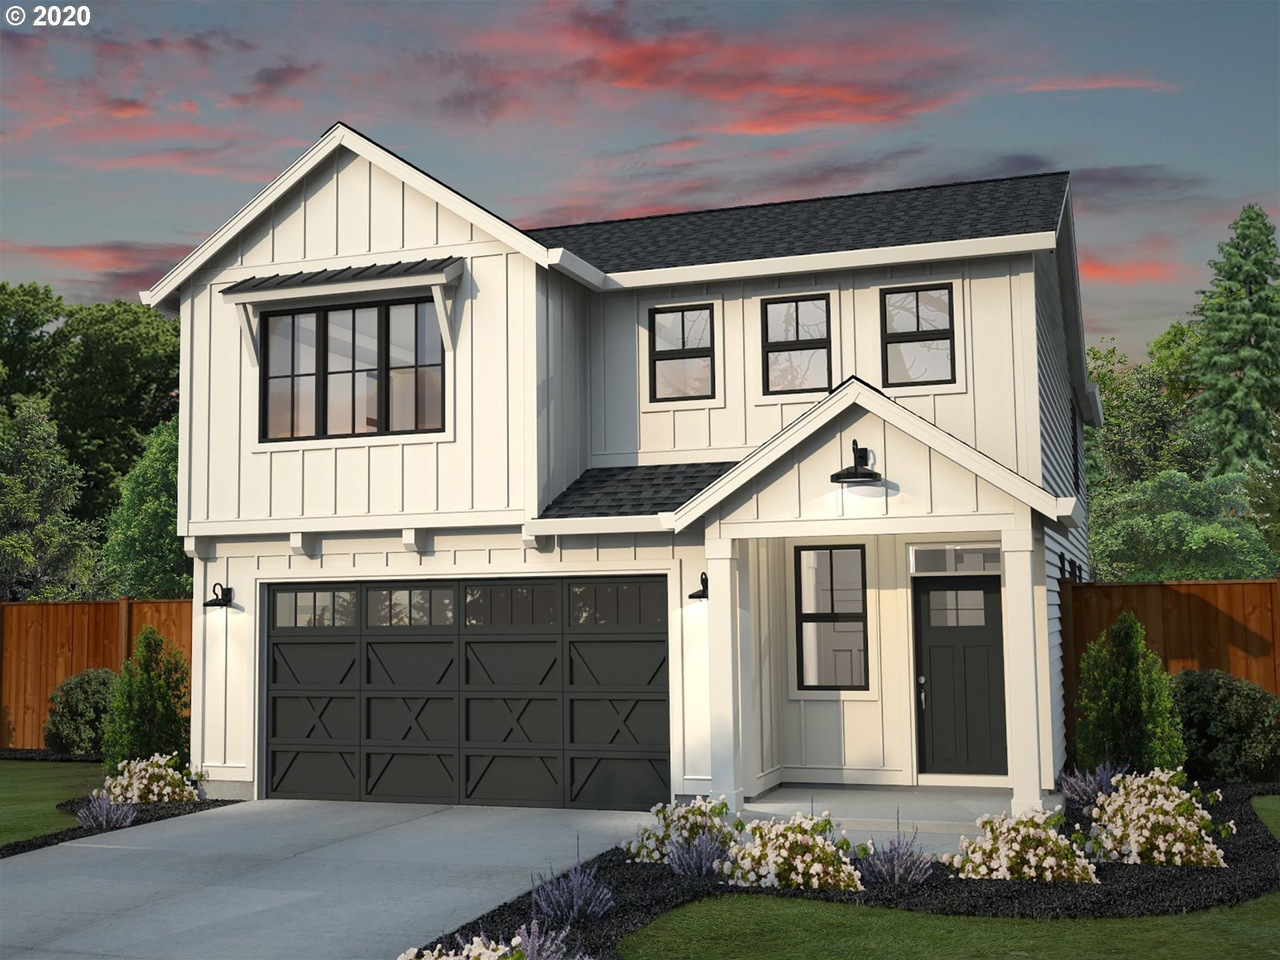 Move In Ready Designer Homes Are Selling Fast New Tradition Homes